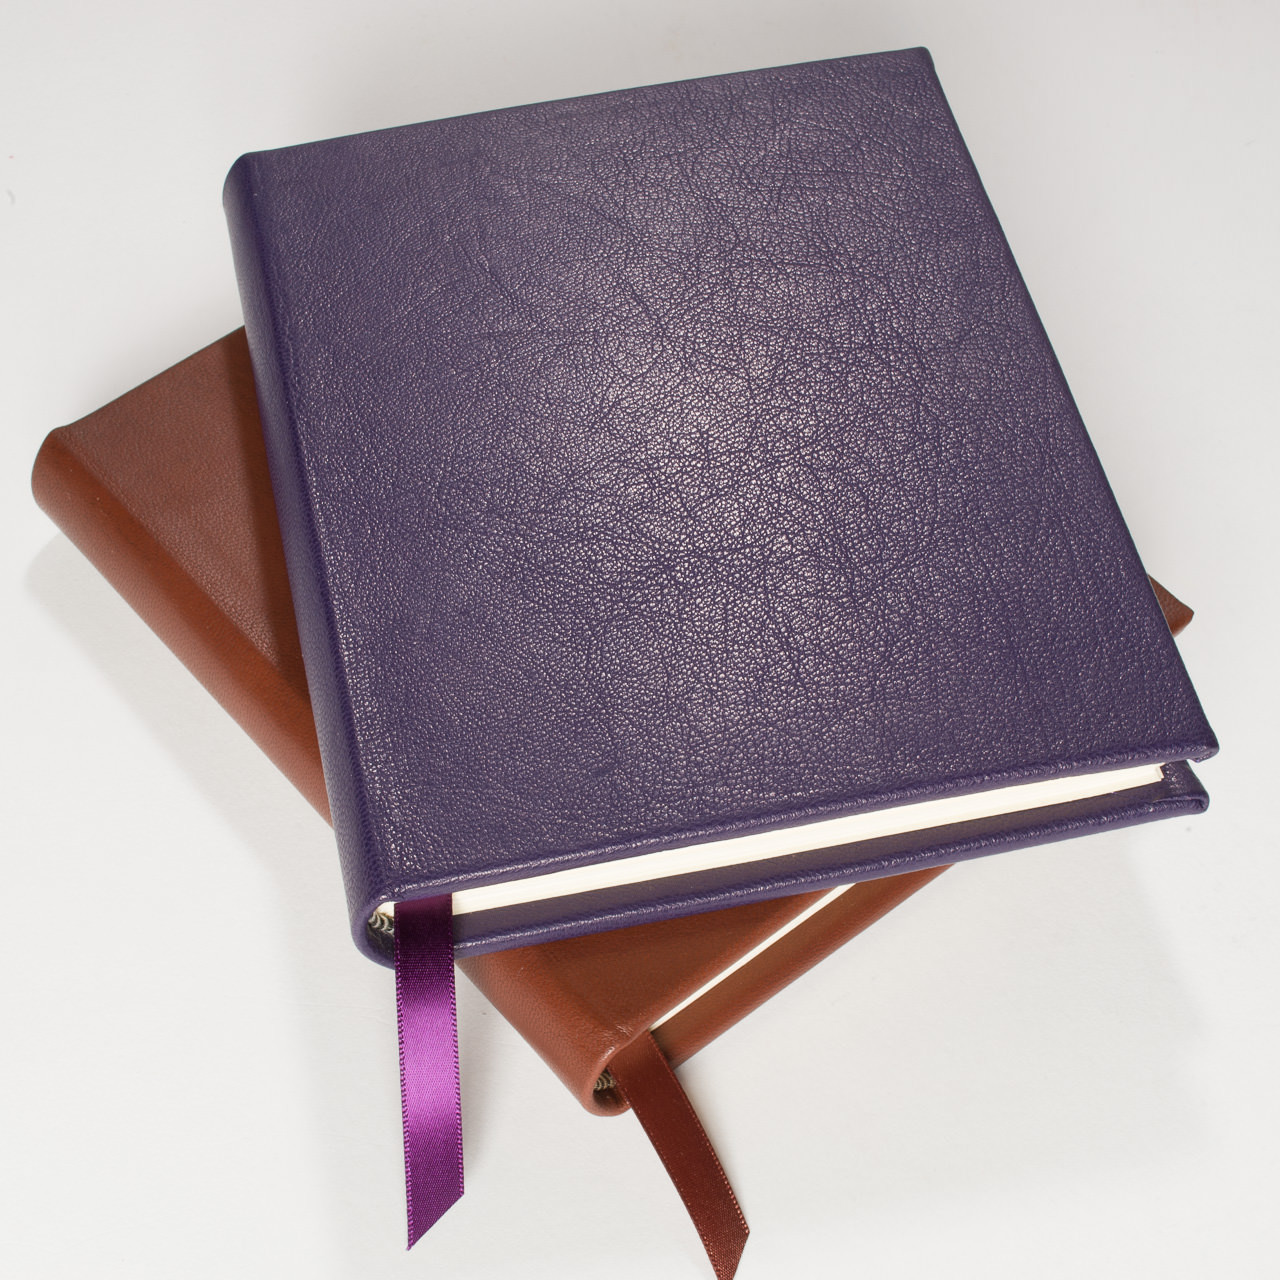 64504e7c8fb8 All Leather fine bound Journal